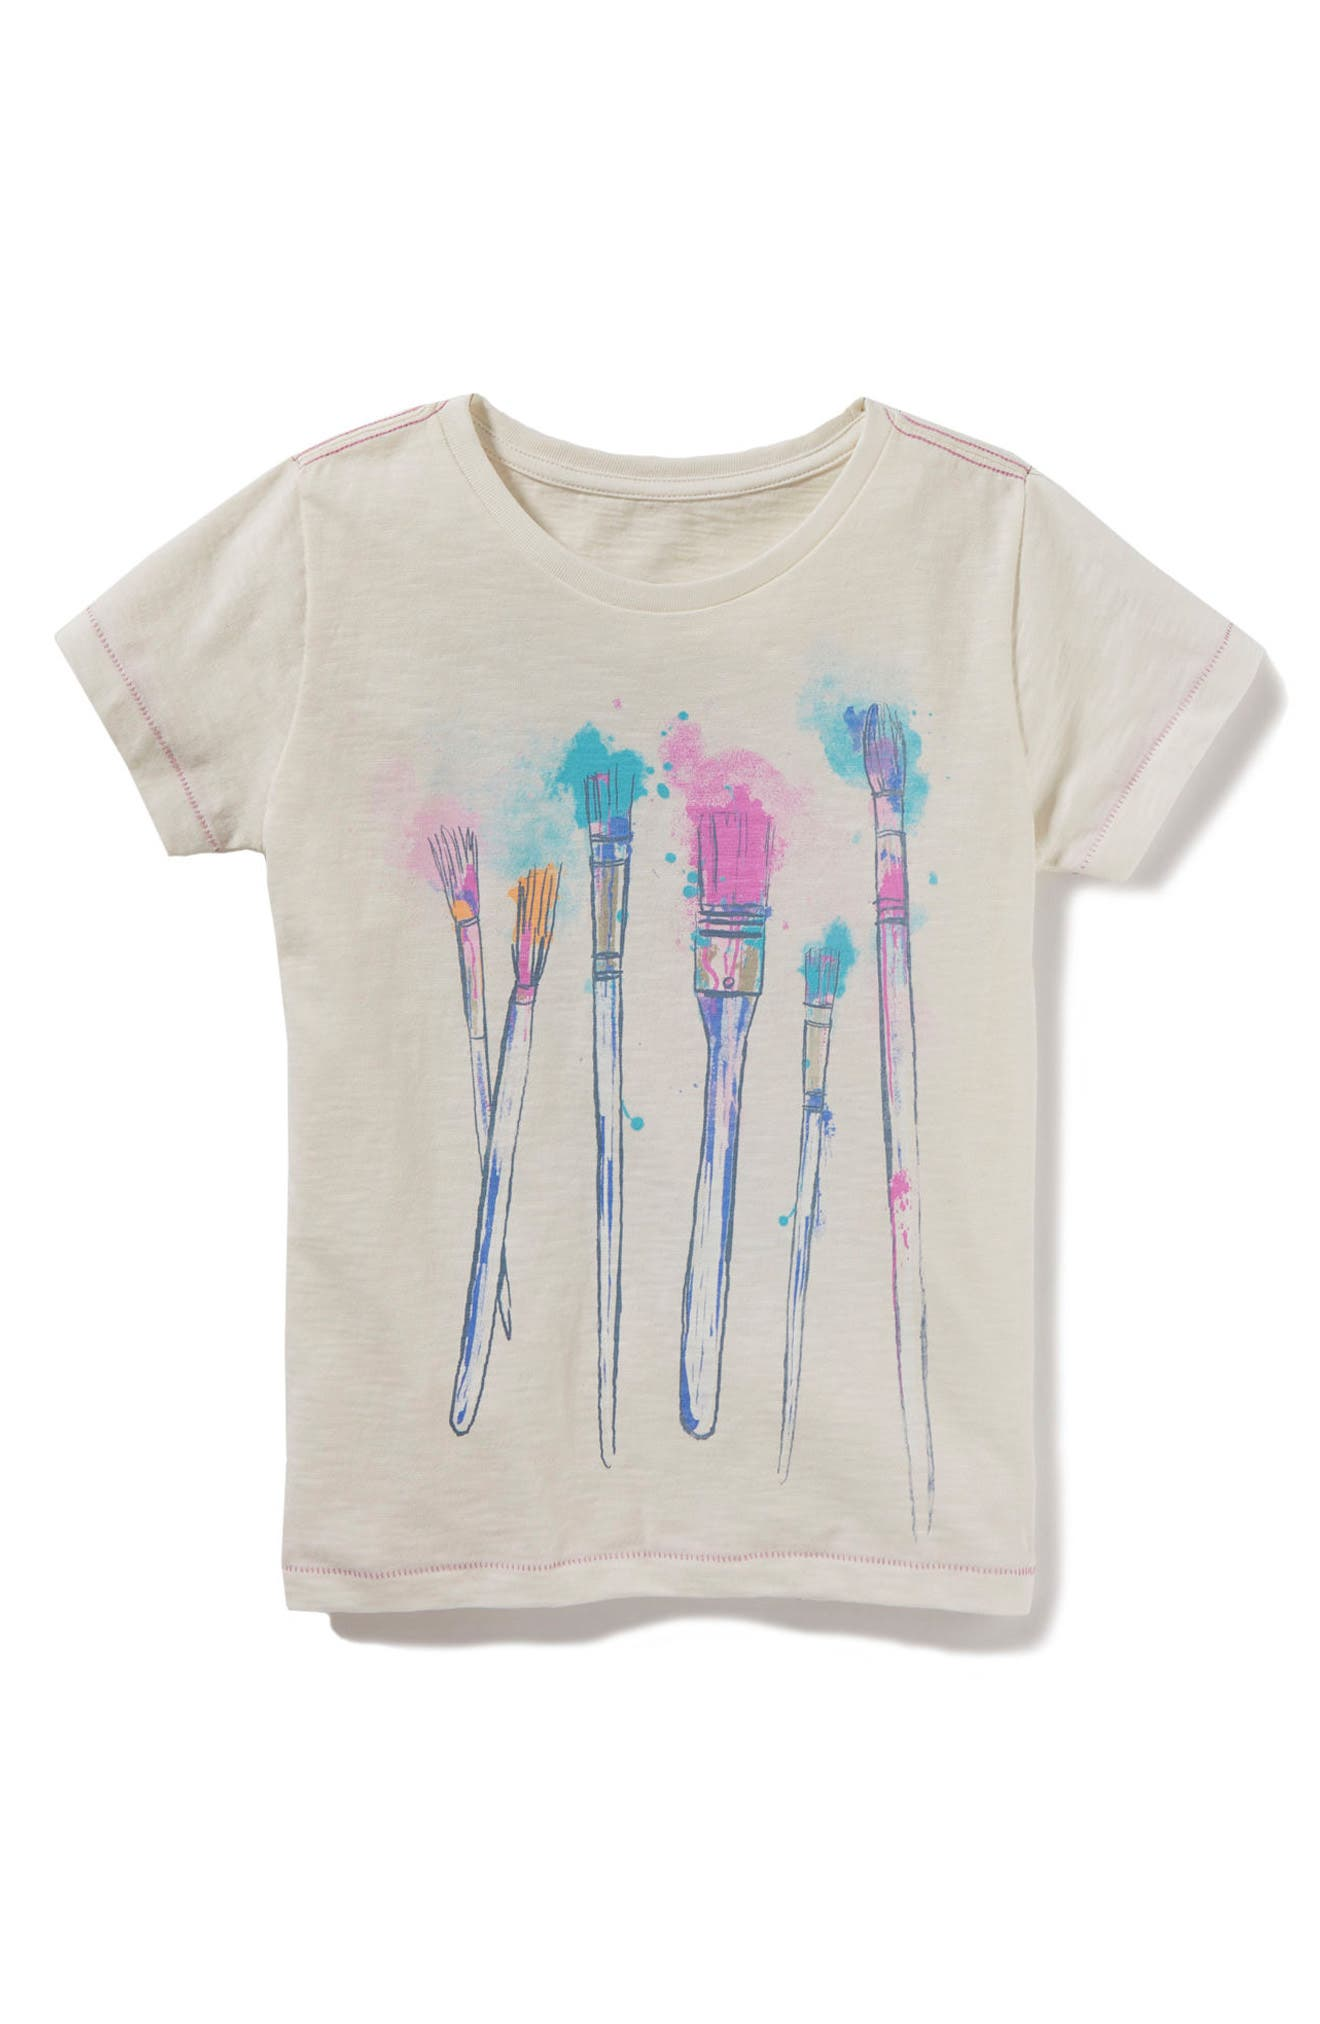 Art is Not Graphic Tee,                             Main thumbnail 1, color,                             100